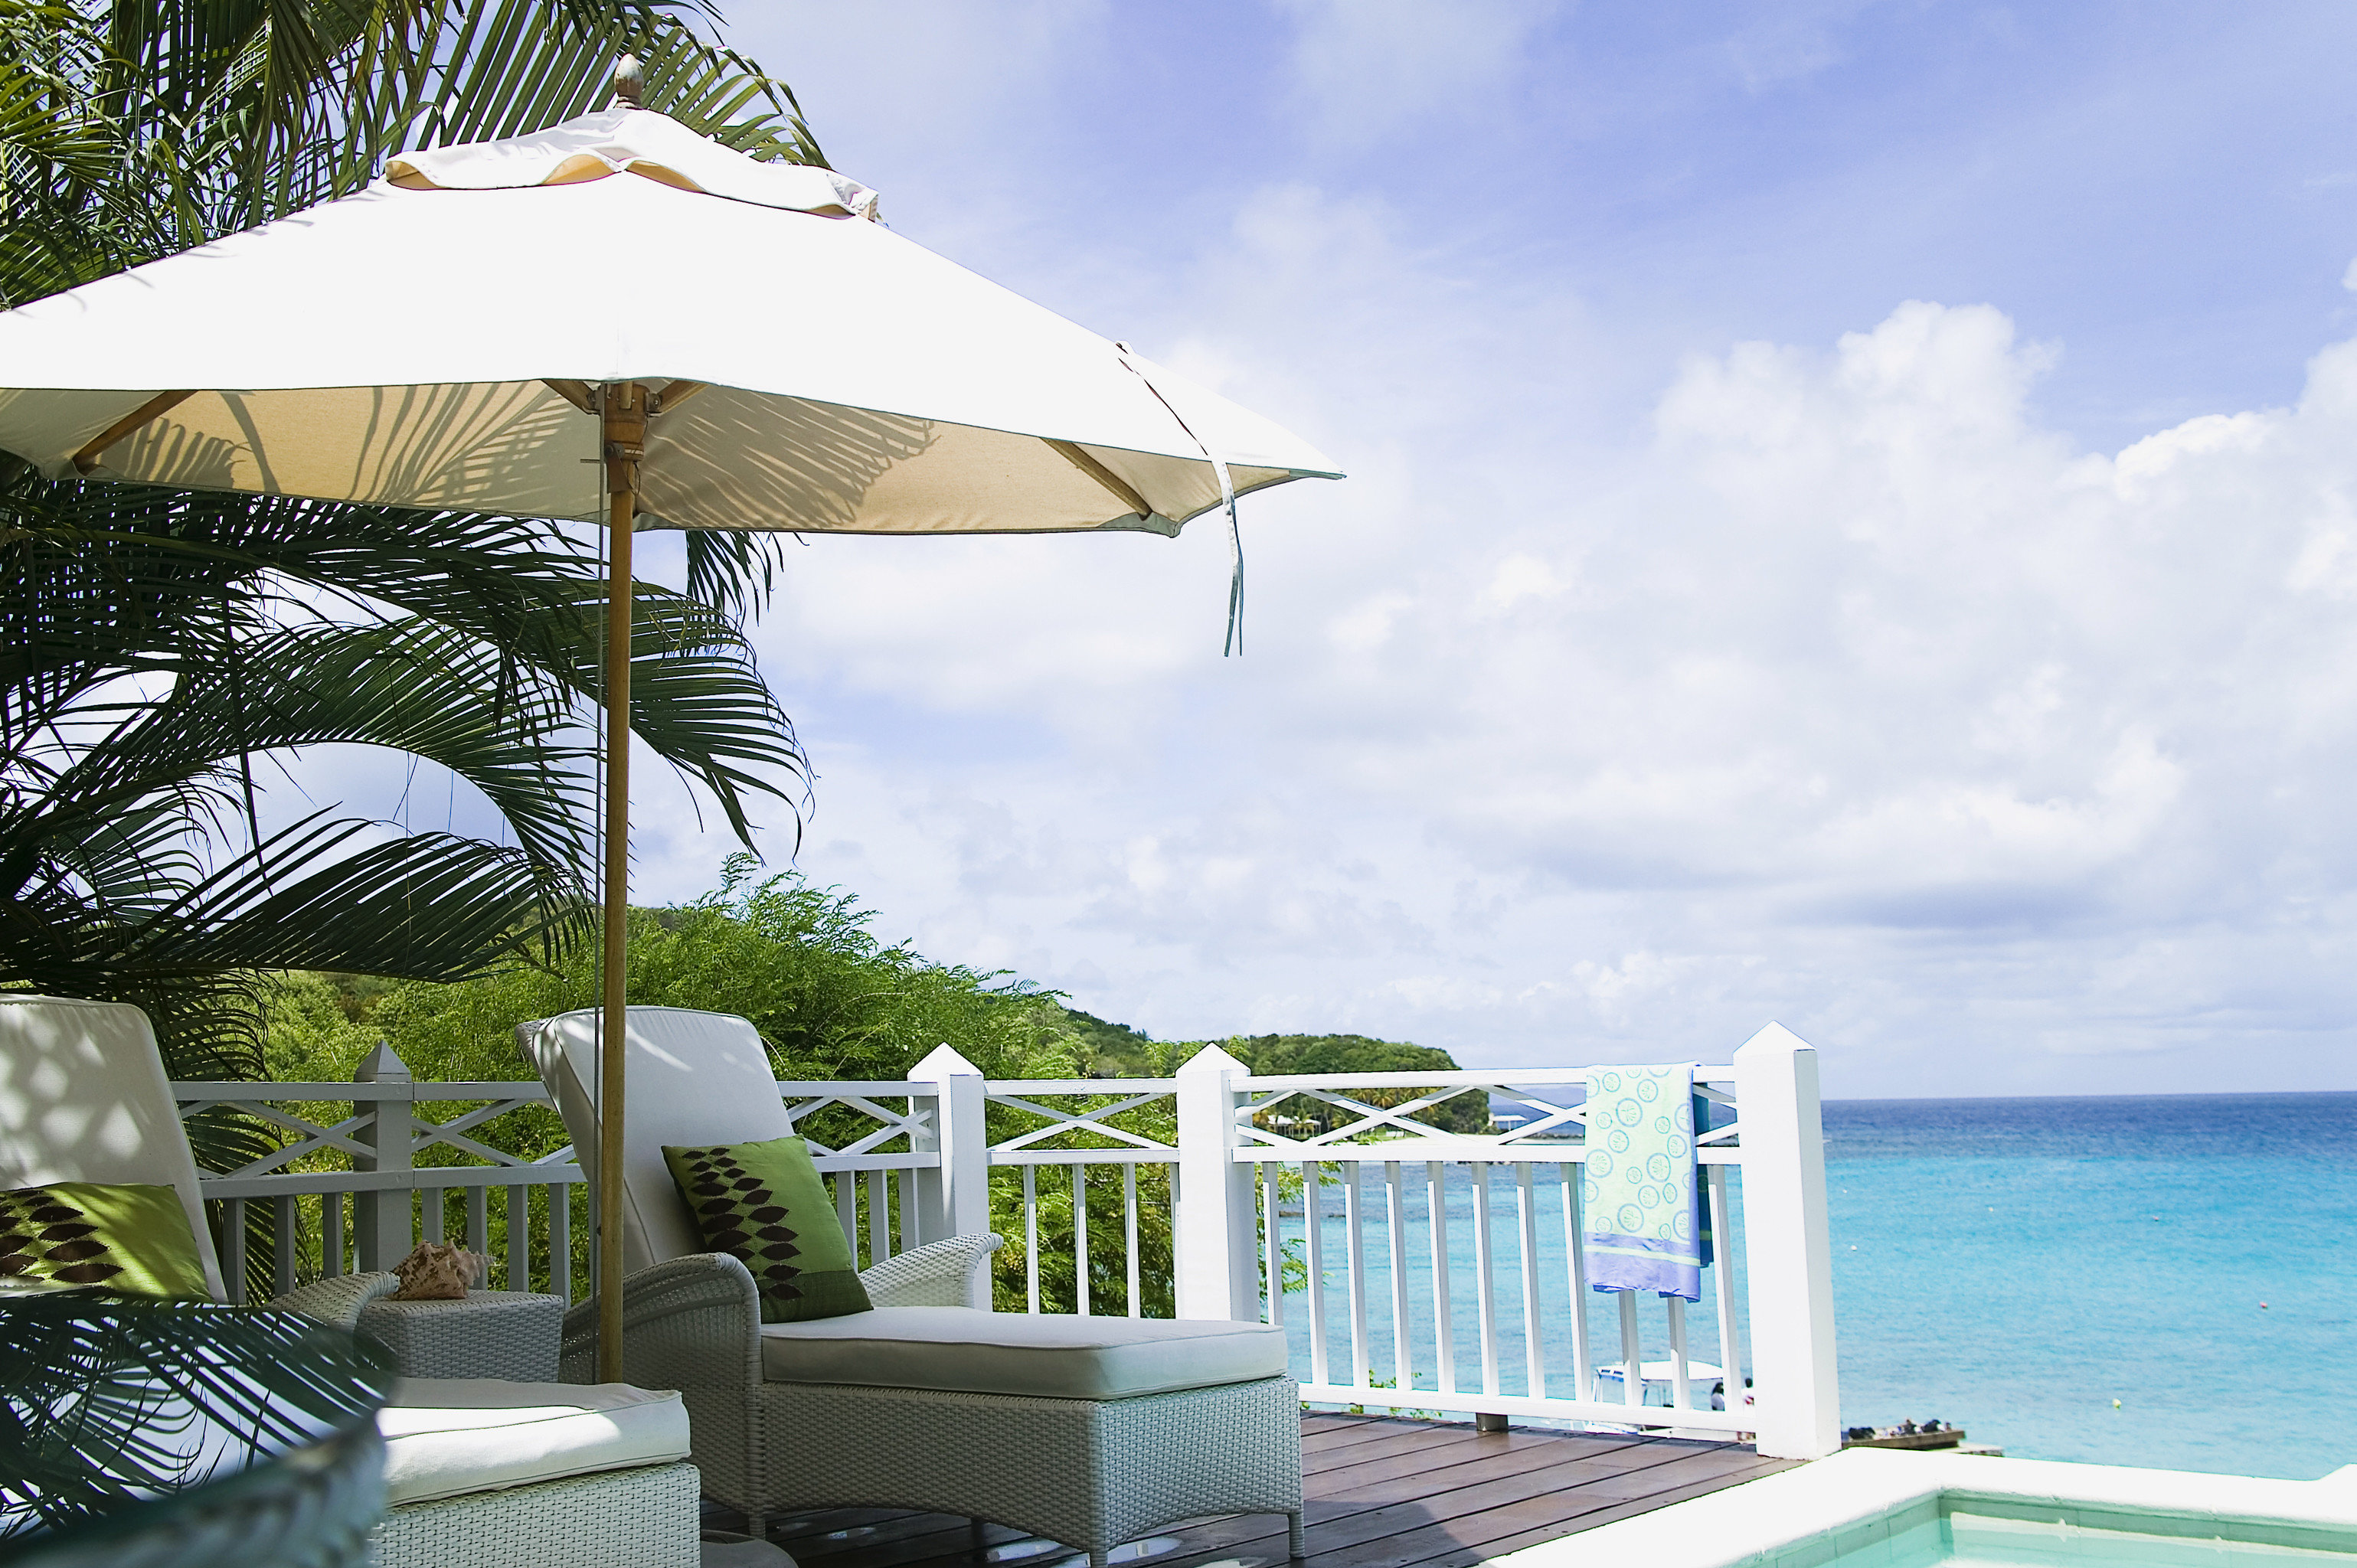 Balcony Beachfront Deck Island Ocean Scenic views sky chair Beach caribbean Resort Villa umbrella swimming pool Sea cottage accessory